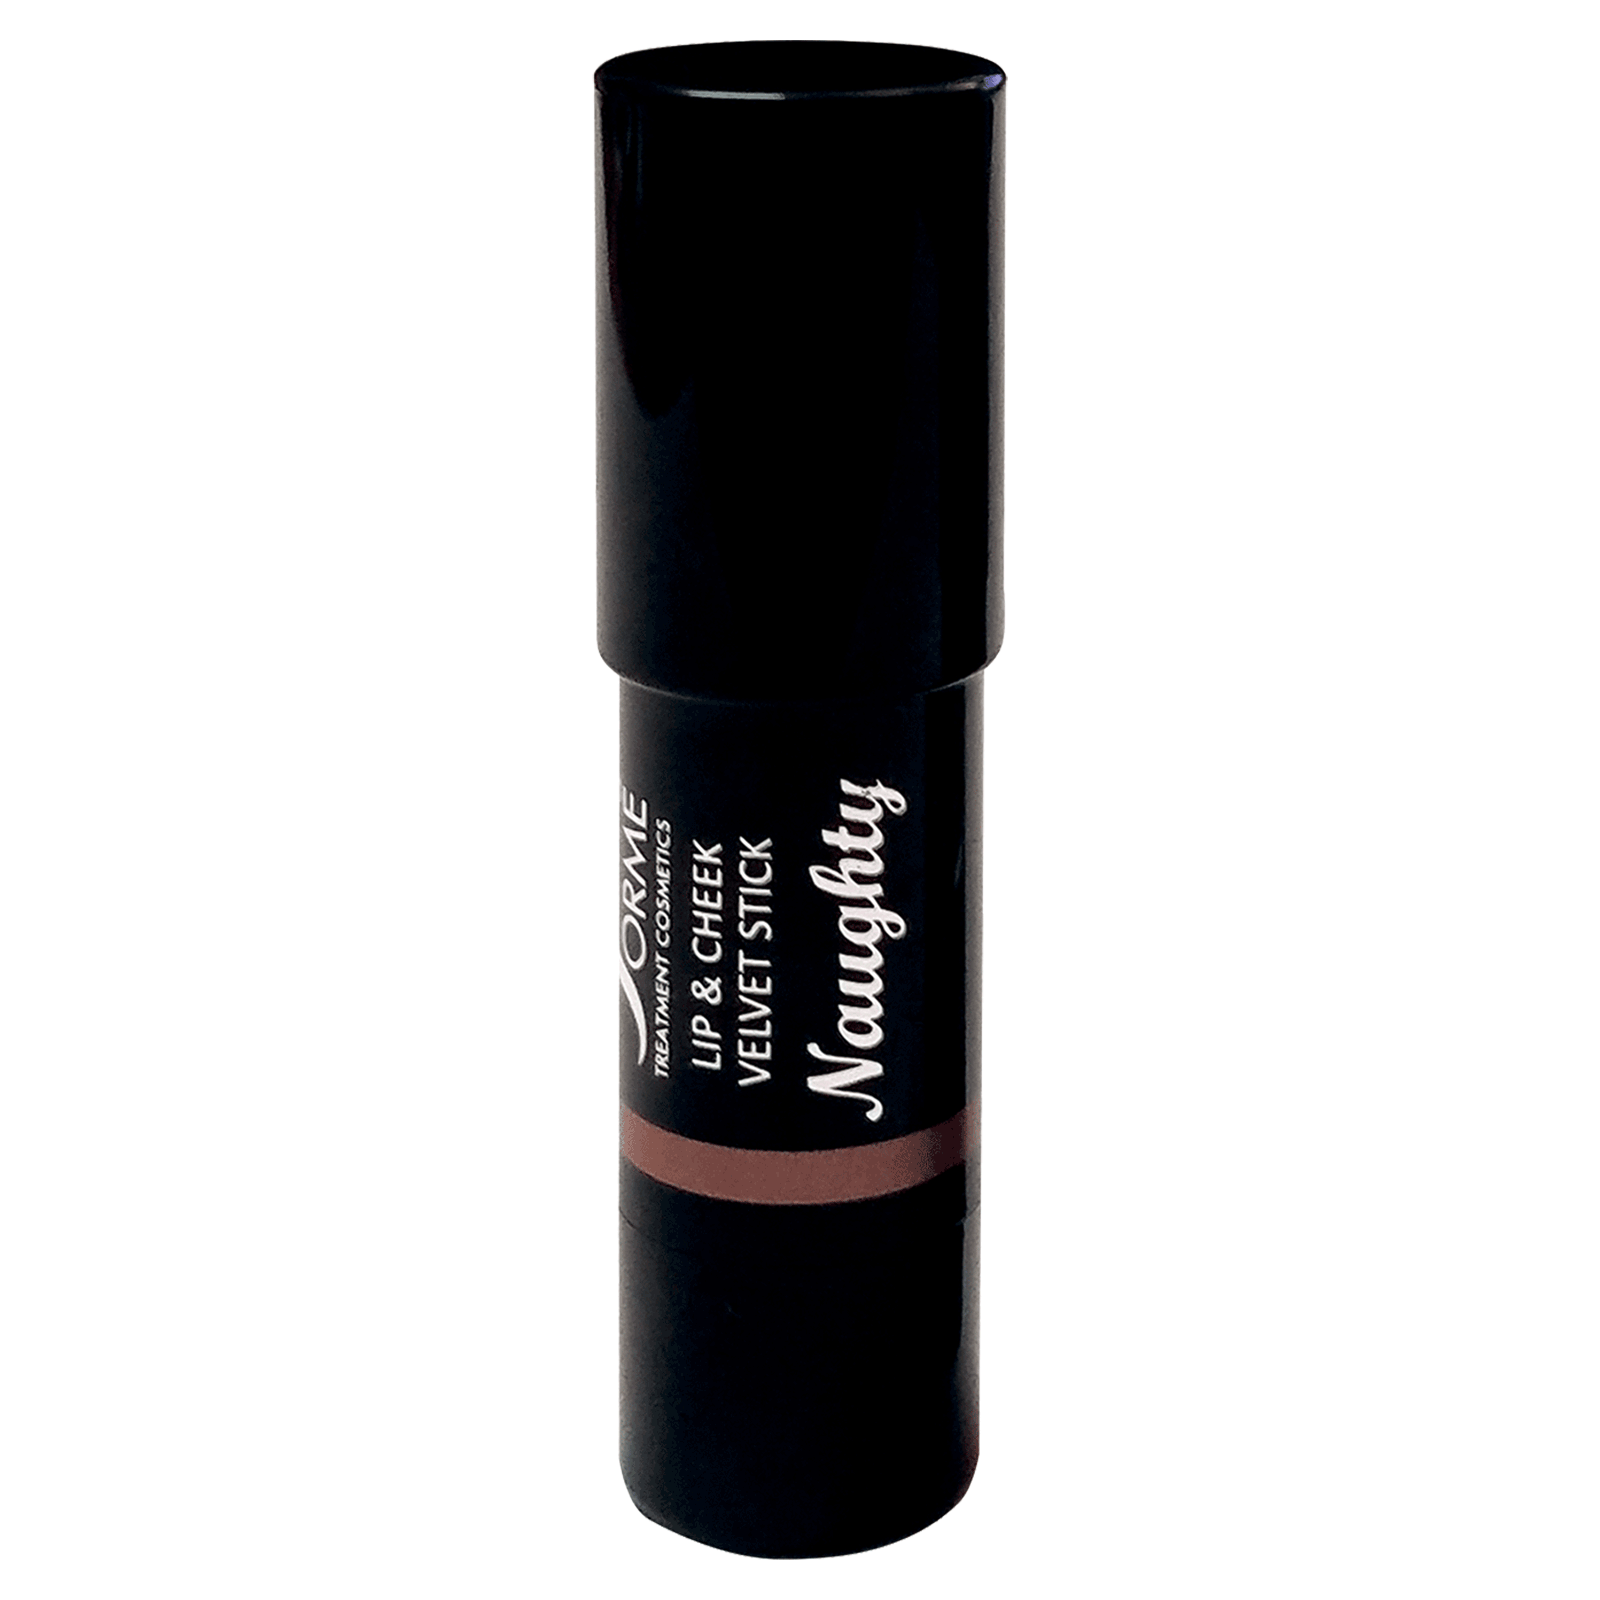 Lip and Cheek Velvet Stick